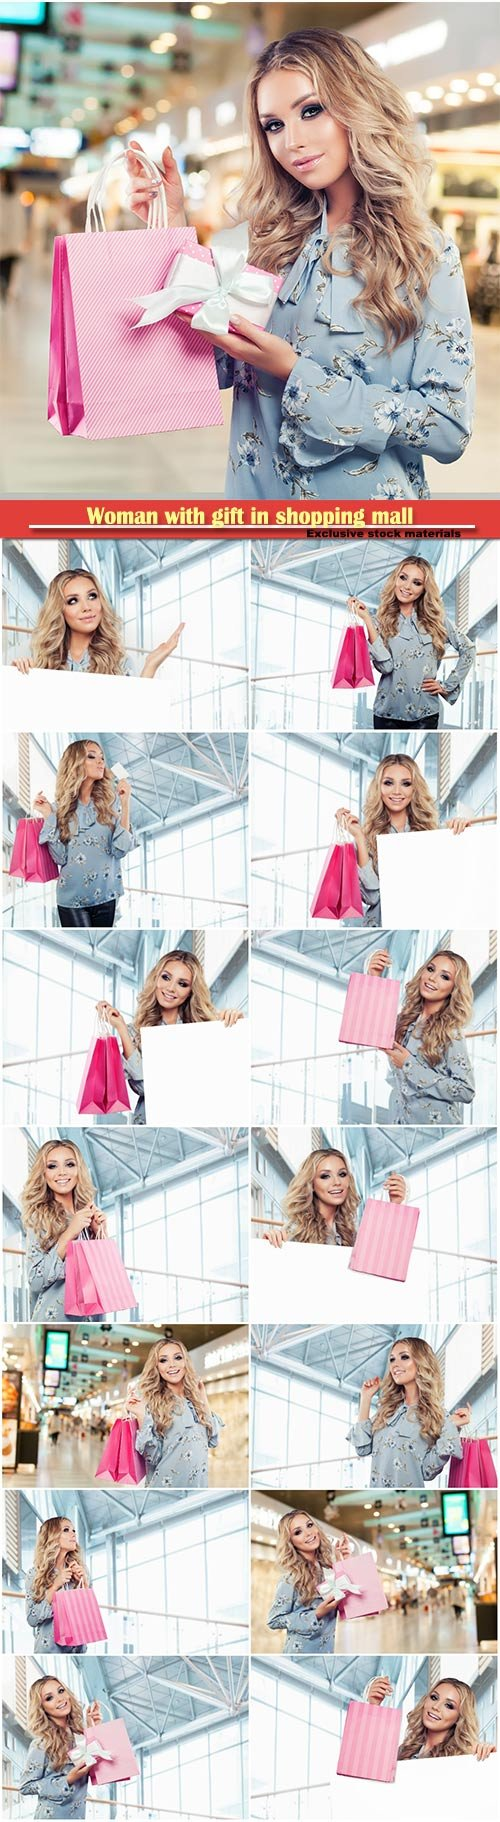 Happy beautiful woman fashion model with gift in shopping mall